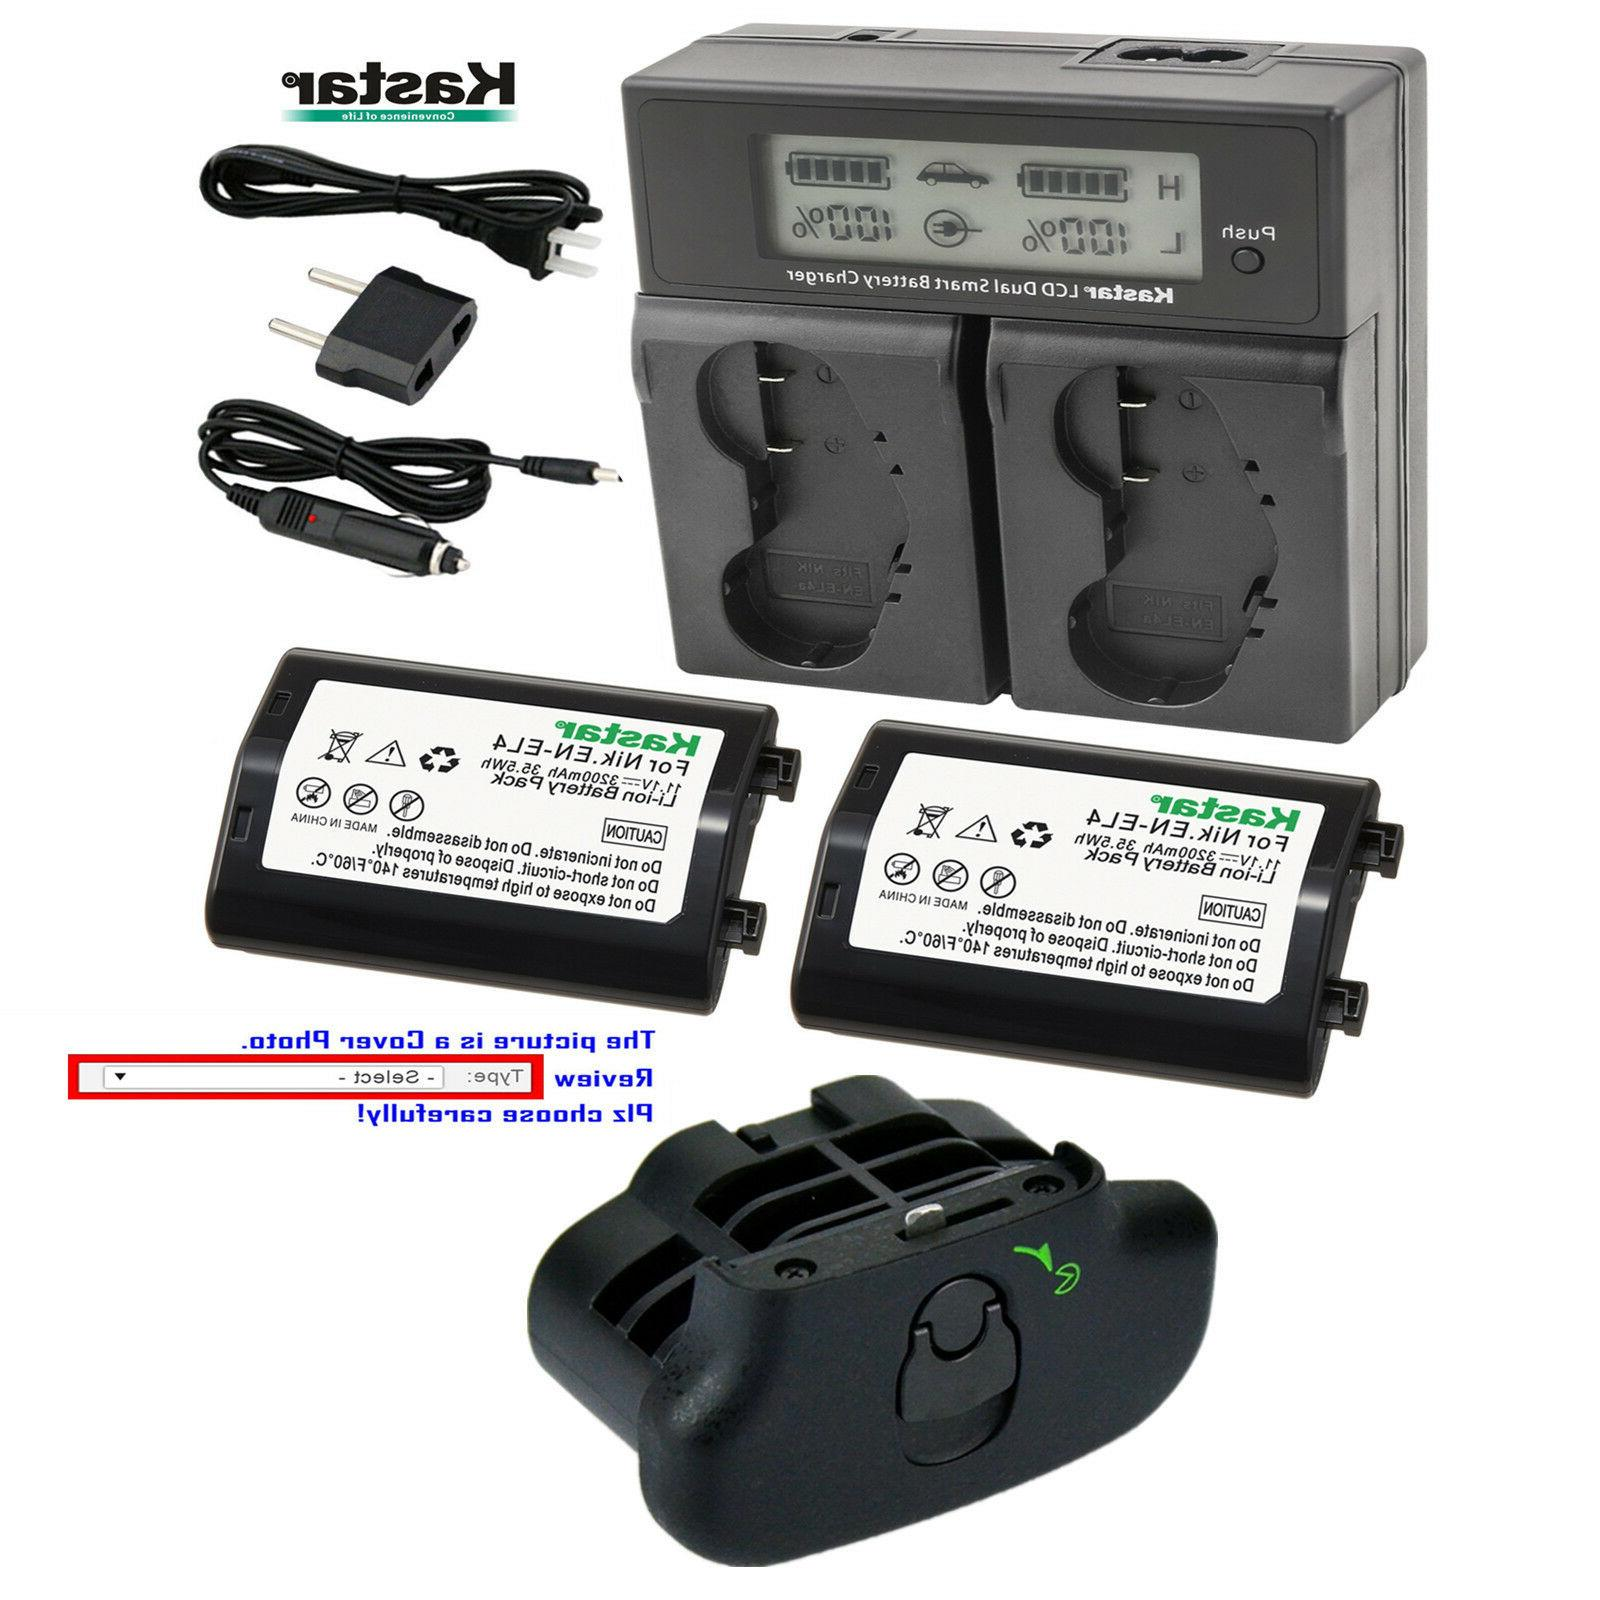 EN-EL4 Battery, Charger for Nikon D2Z D2H D2Hs D2X D2Xs D3 D